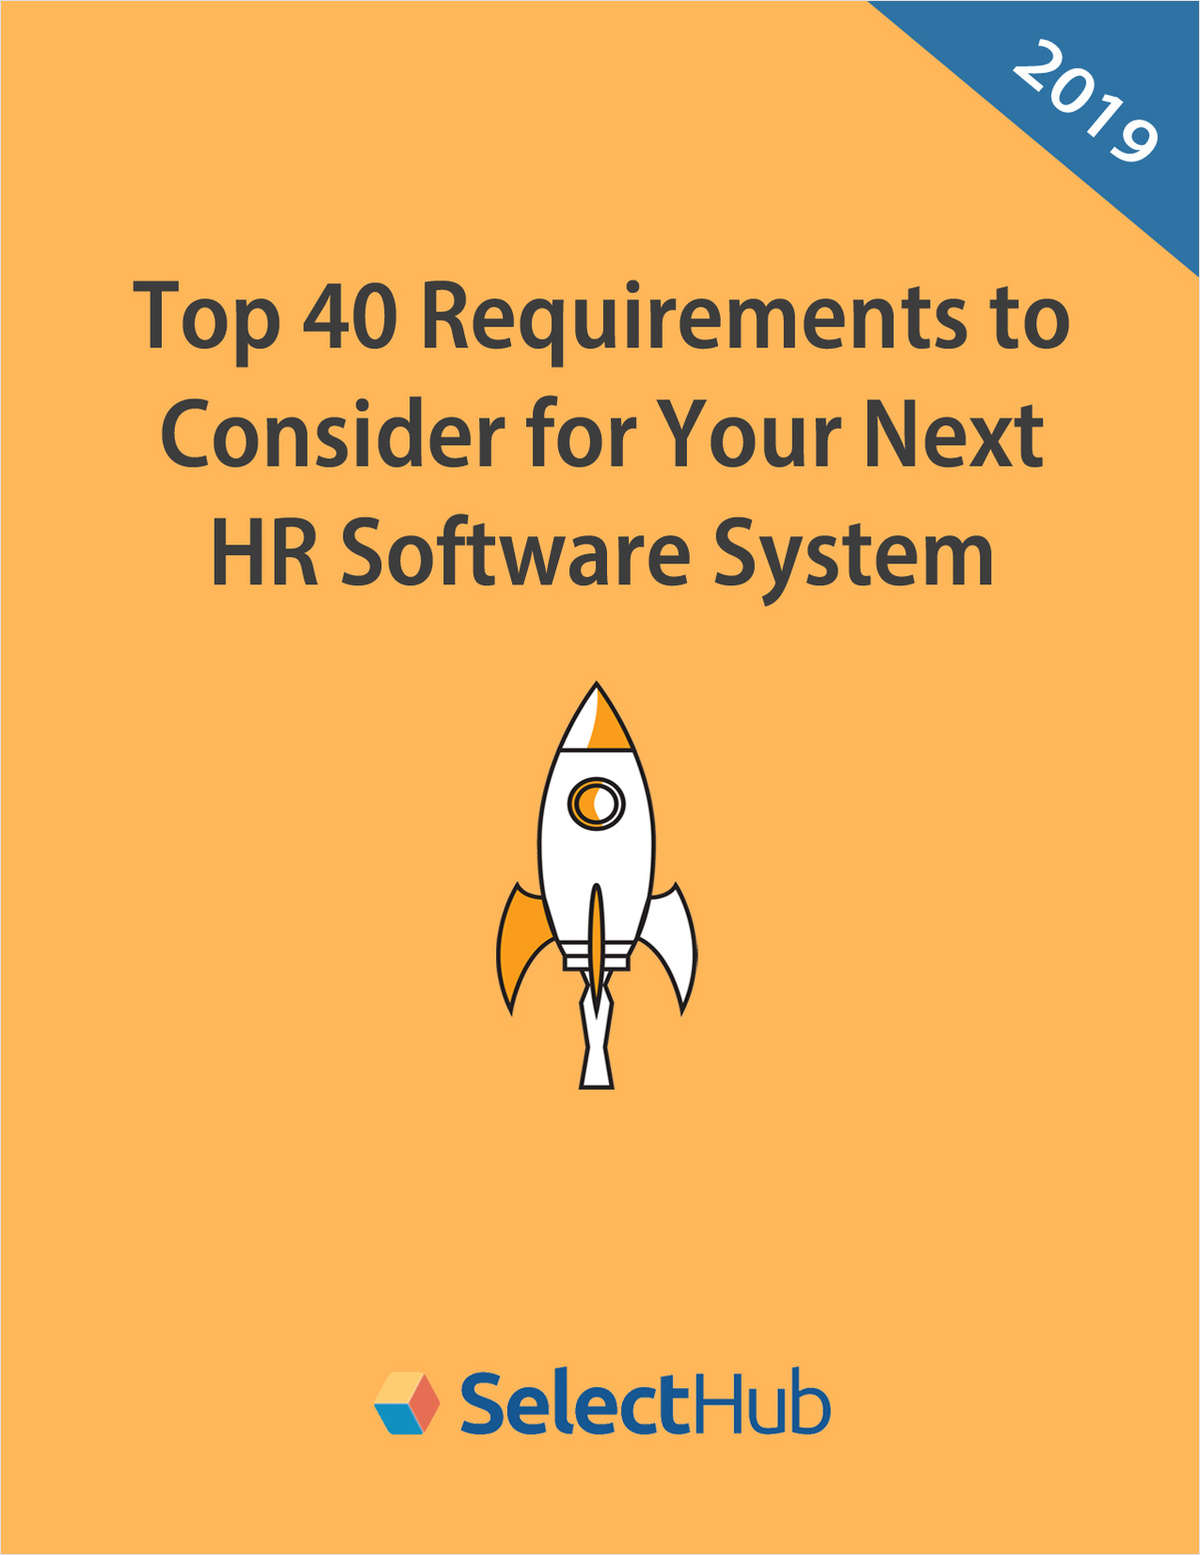 Top 40 Requirements to Consider for Your Next HR Management Software System